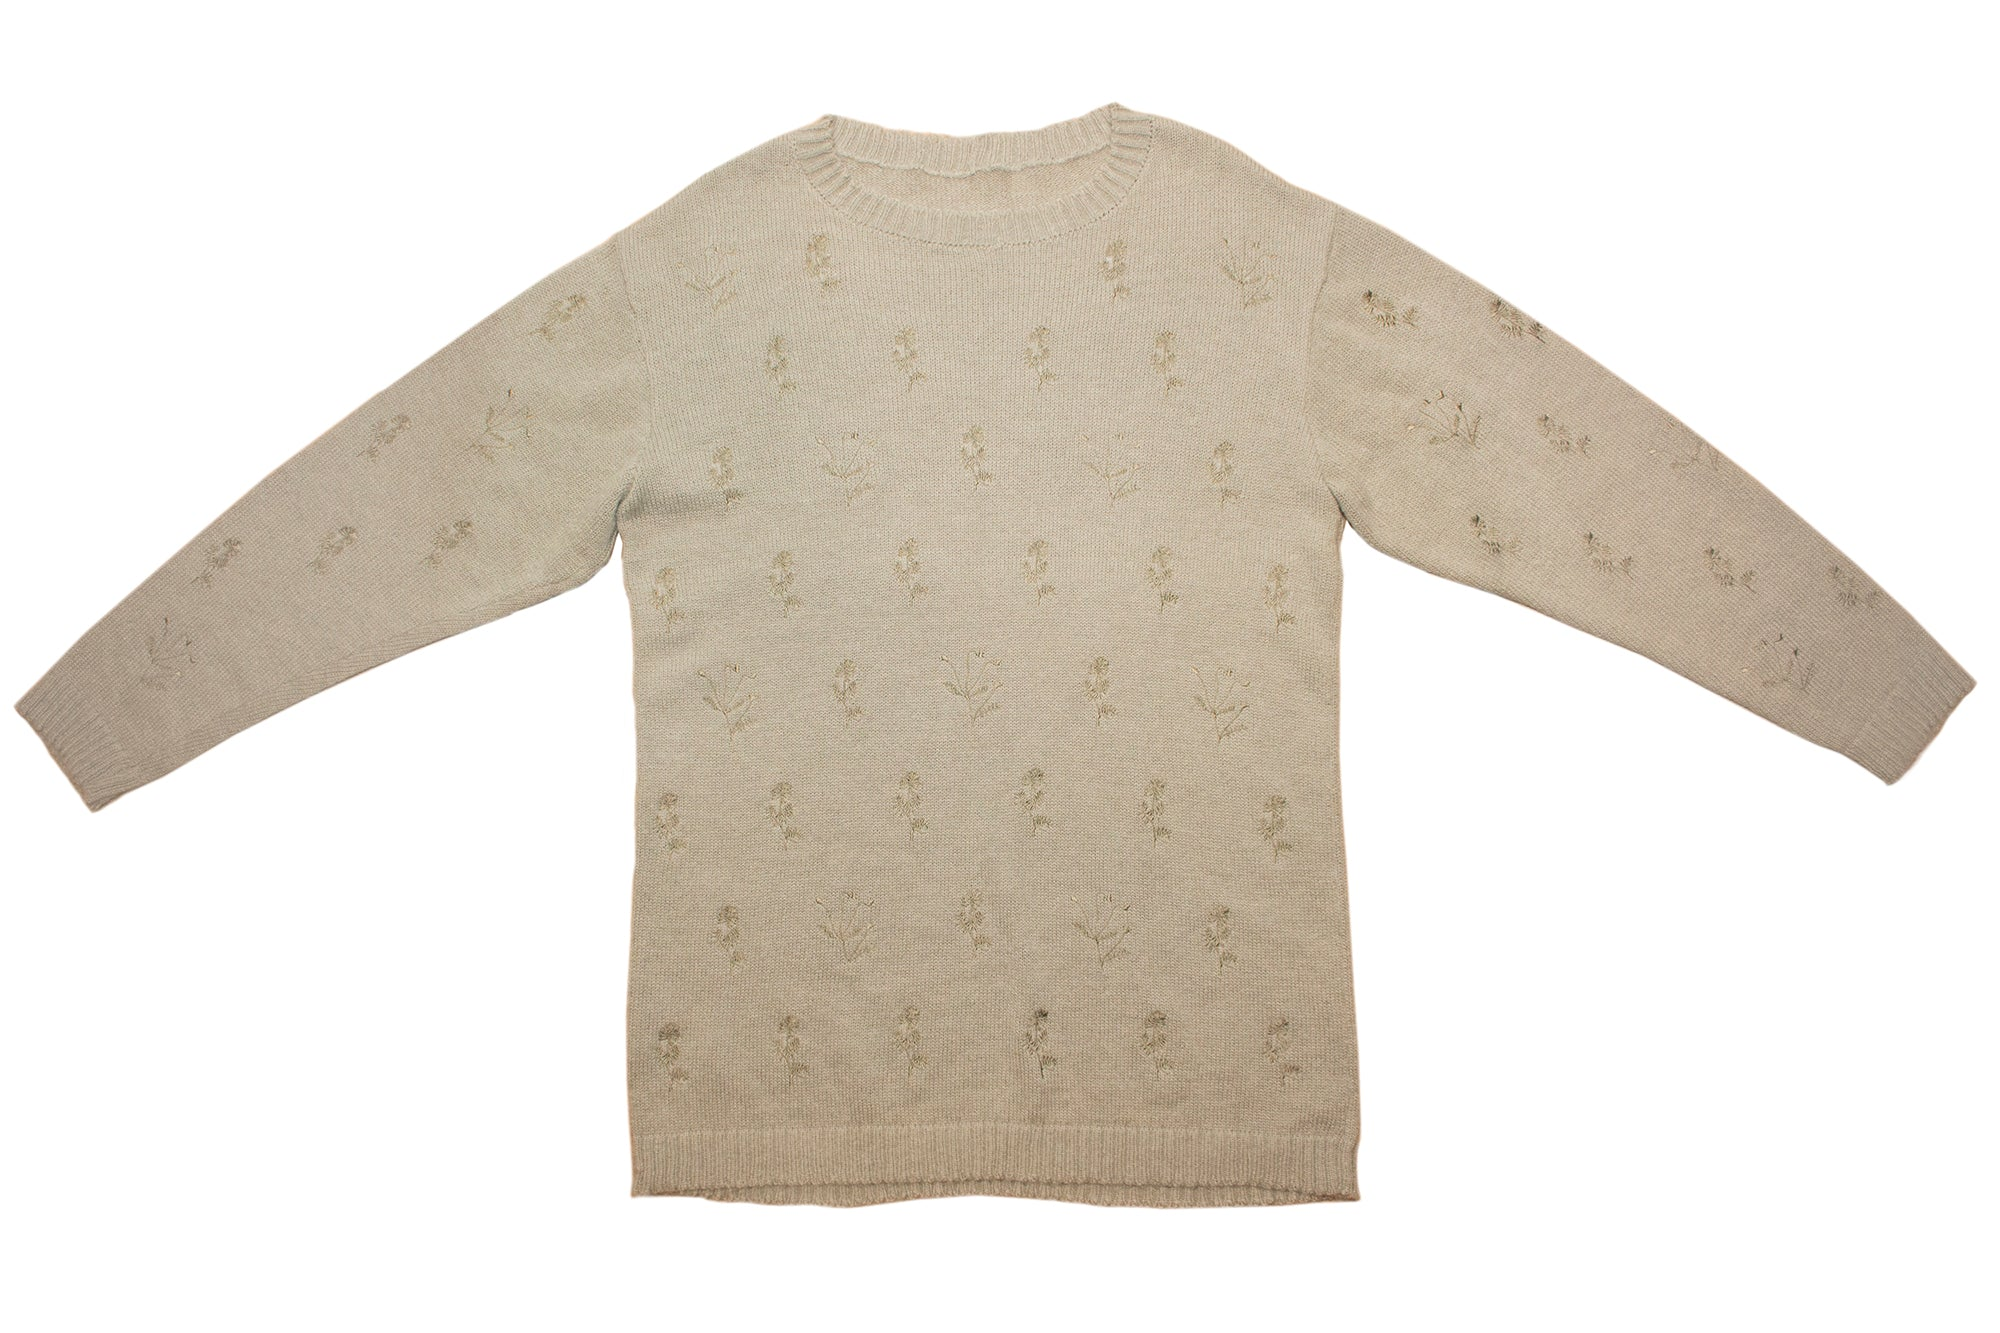 Tourist 2 Sweater 25